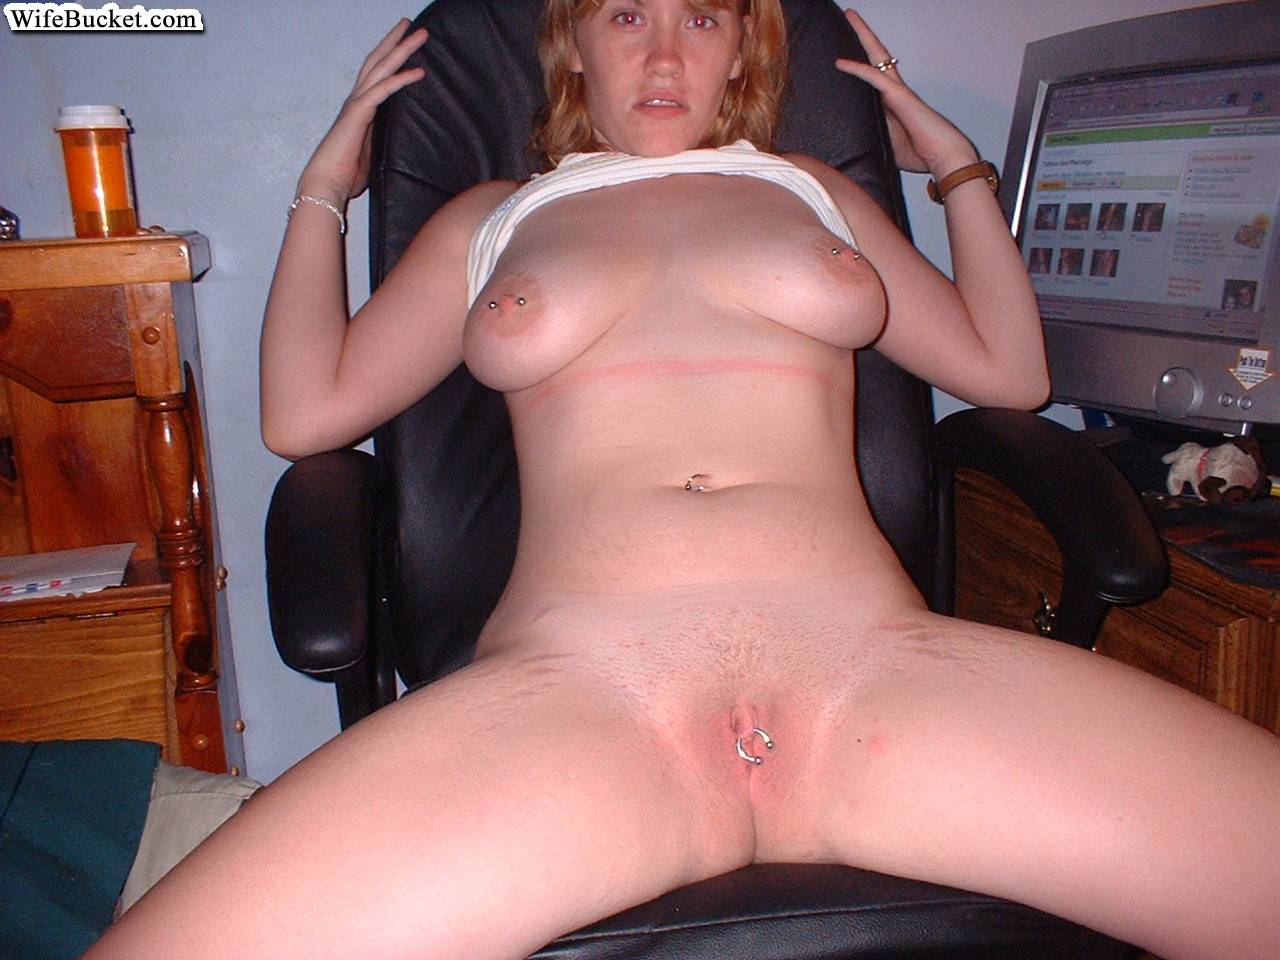 Submitted Nude Photos Of Wife